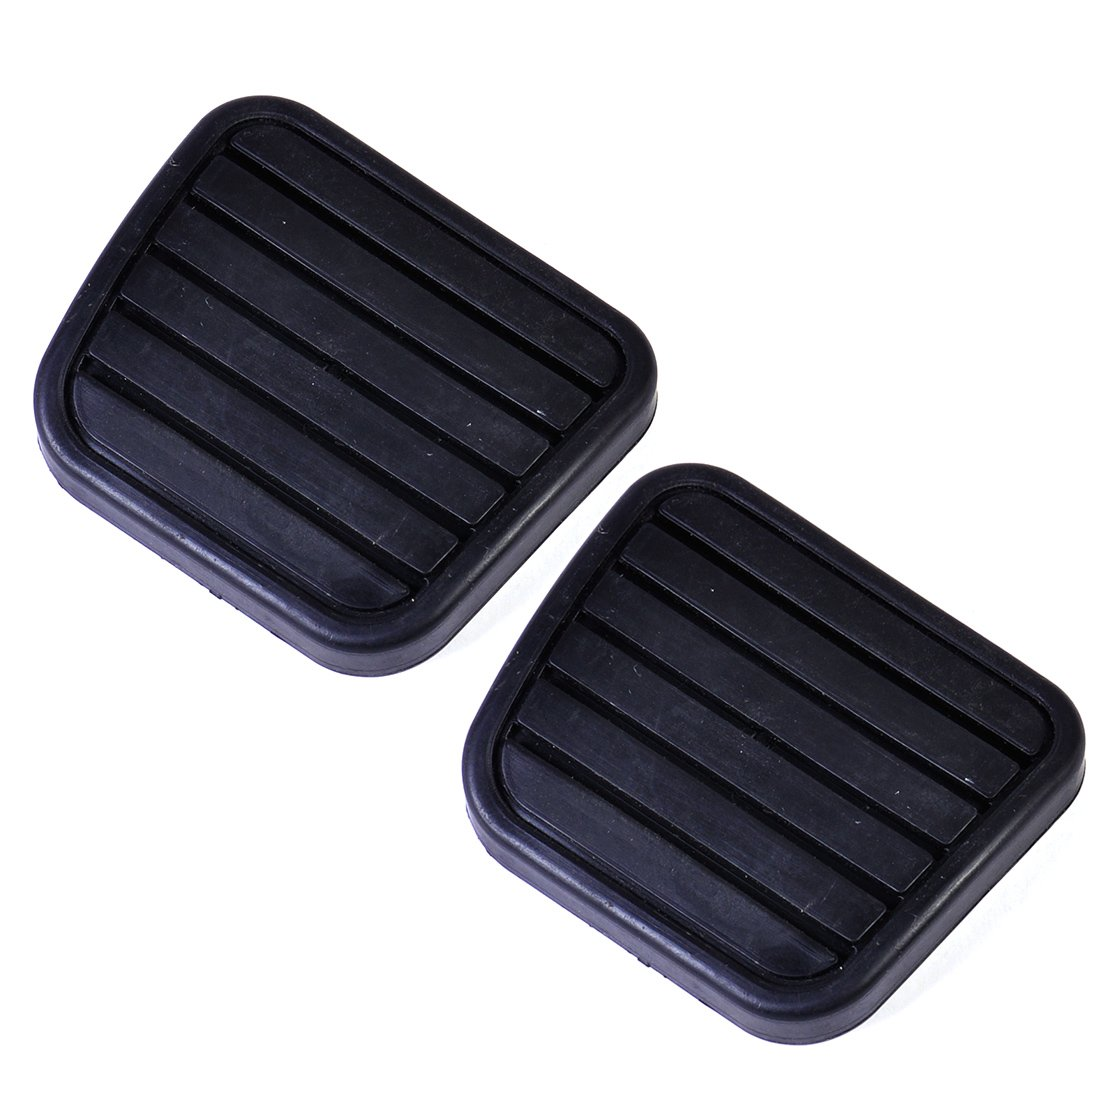 2pcs Car Clutch Brake Pedal Pad Rubber Cover eastar